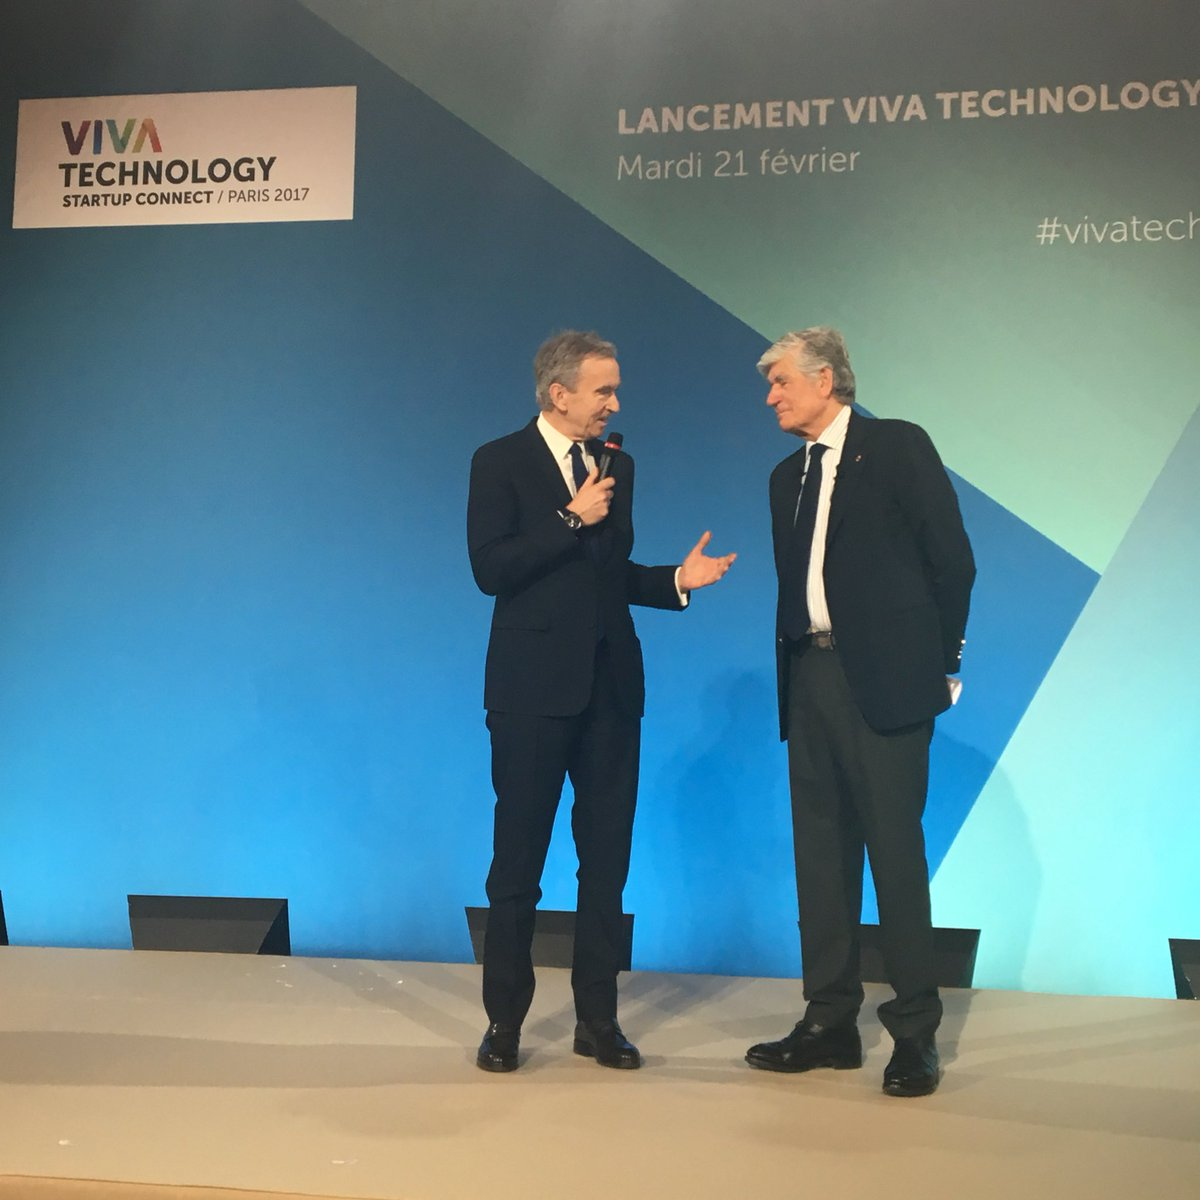 Bernard Arnault (Chairman & CEO, @LVMH) on stage to launch #VivaTe...